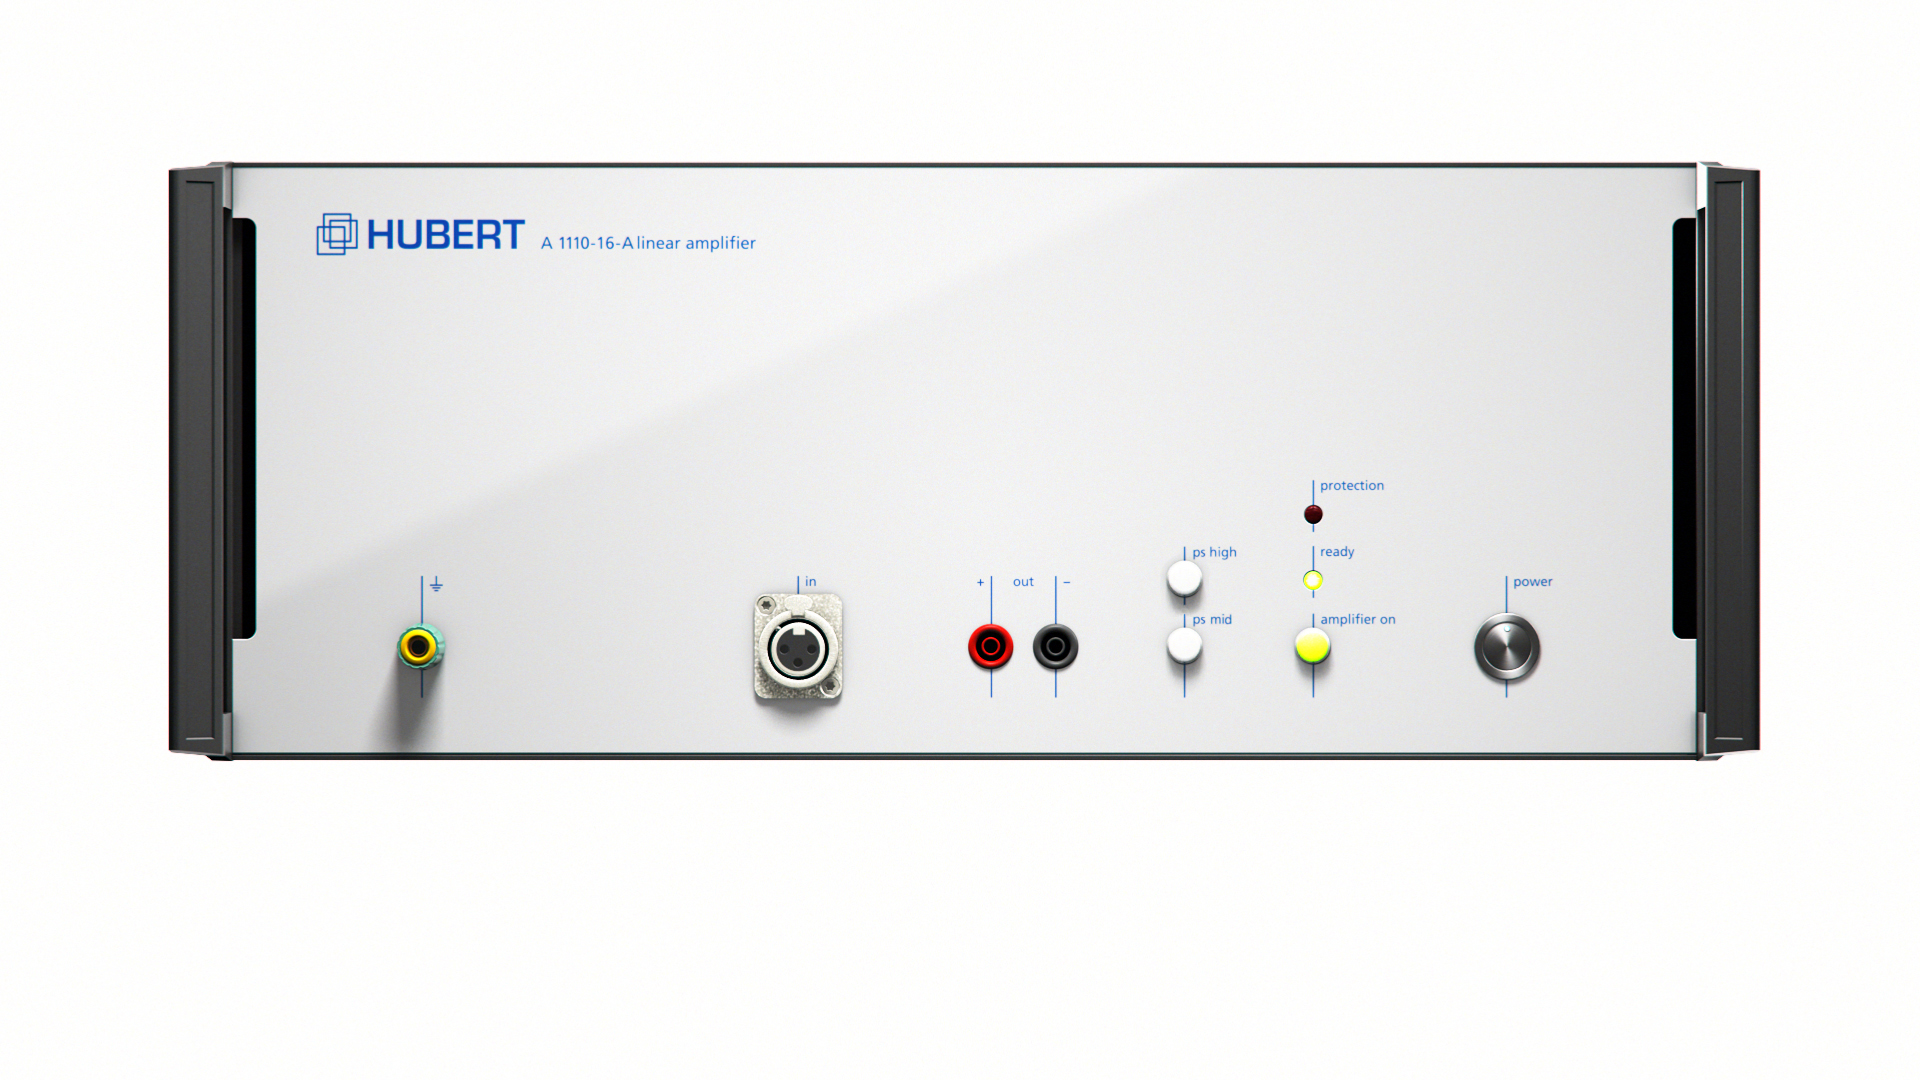 HUBERT A 1110-16-A linear amplifier